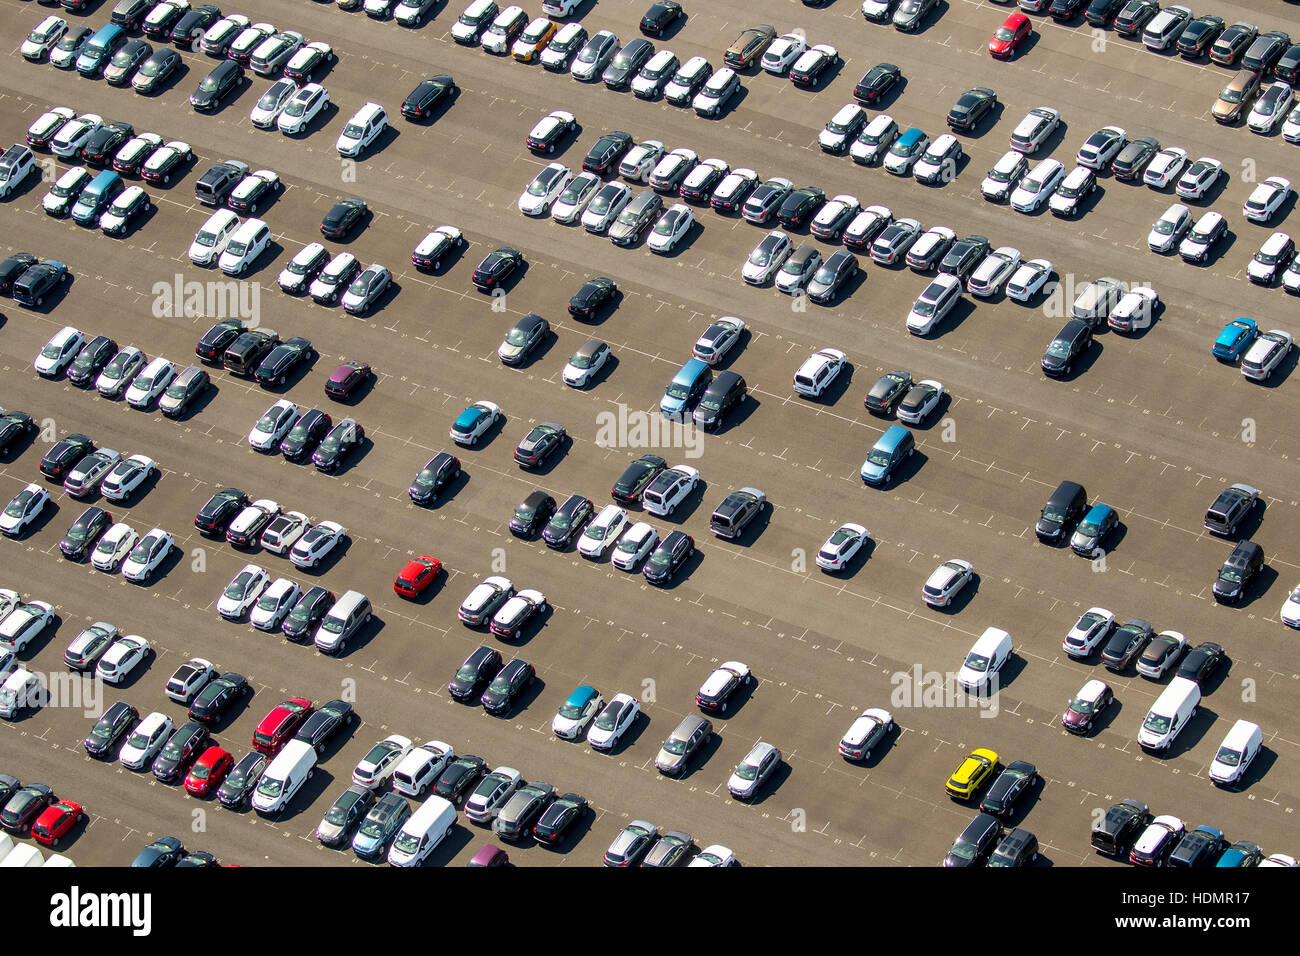 Aerial photograph, new car parking lot, Citroen, Peugeot, Ford, colourful rows of cars, Wallenius Wilhelmsen Logistics, - Stock Image